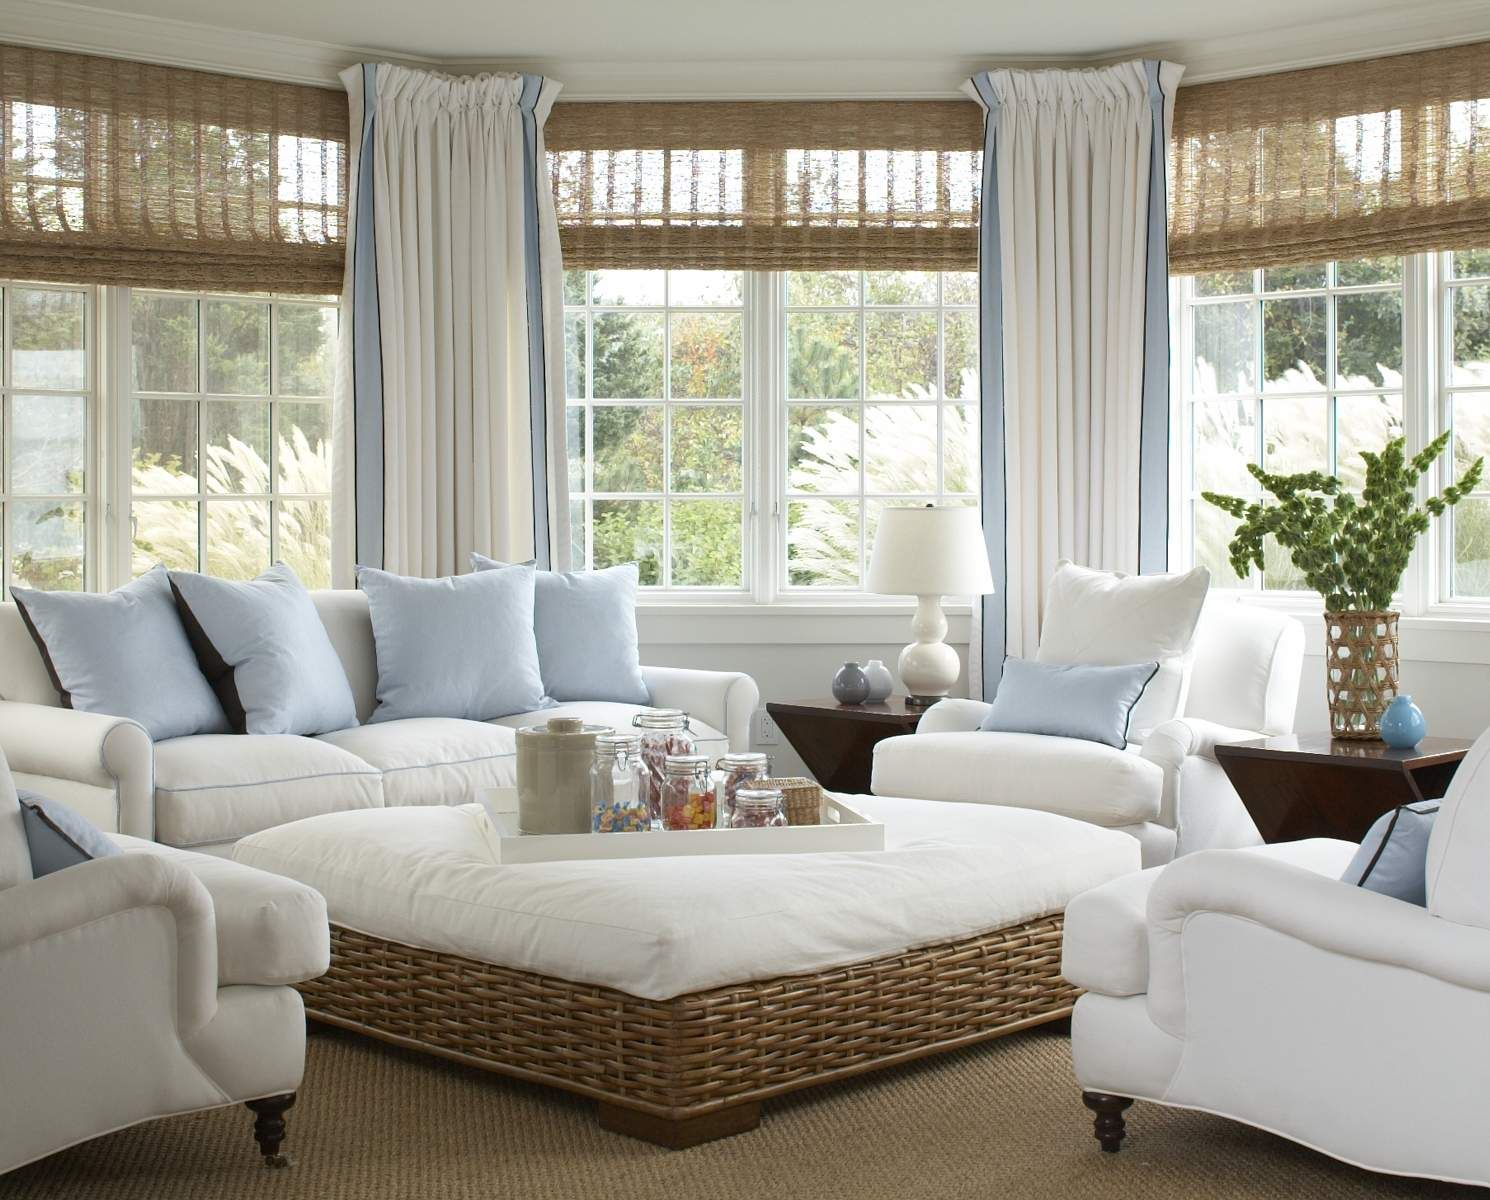 Best 25+ Sunroom furniture ideas on Pinterest | Living room ...